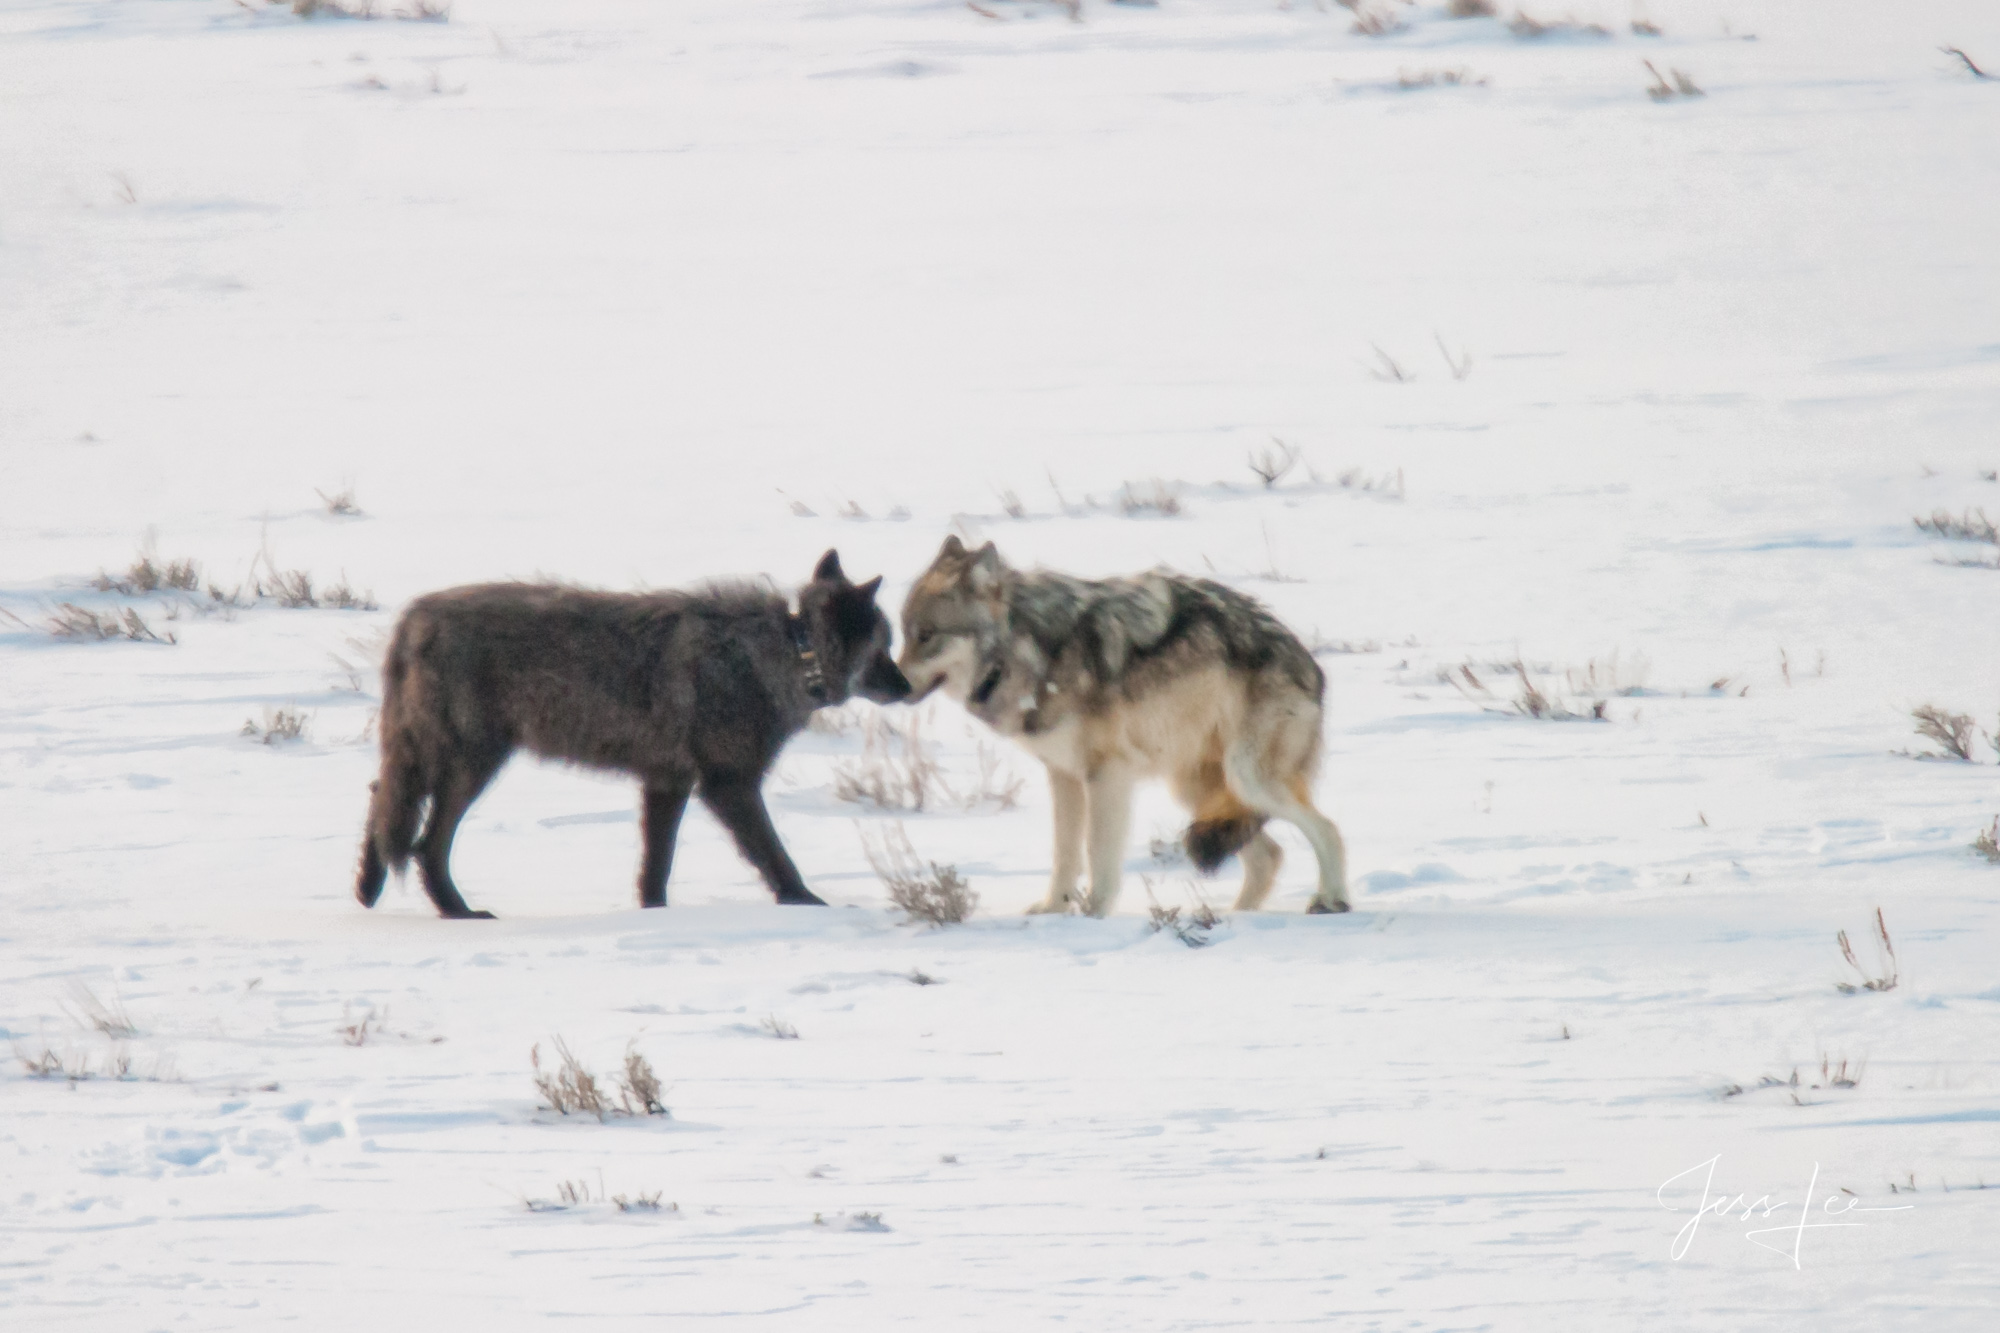 Wolf, wild wolf, yellowstone, wolves, Wild, pack, reintroduction, hunter, hunting, kill, jess lee, wildlife photographer, National Geographic, great, legendary photographer, best wolf photographer, be, photo